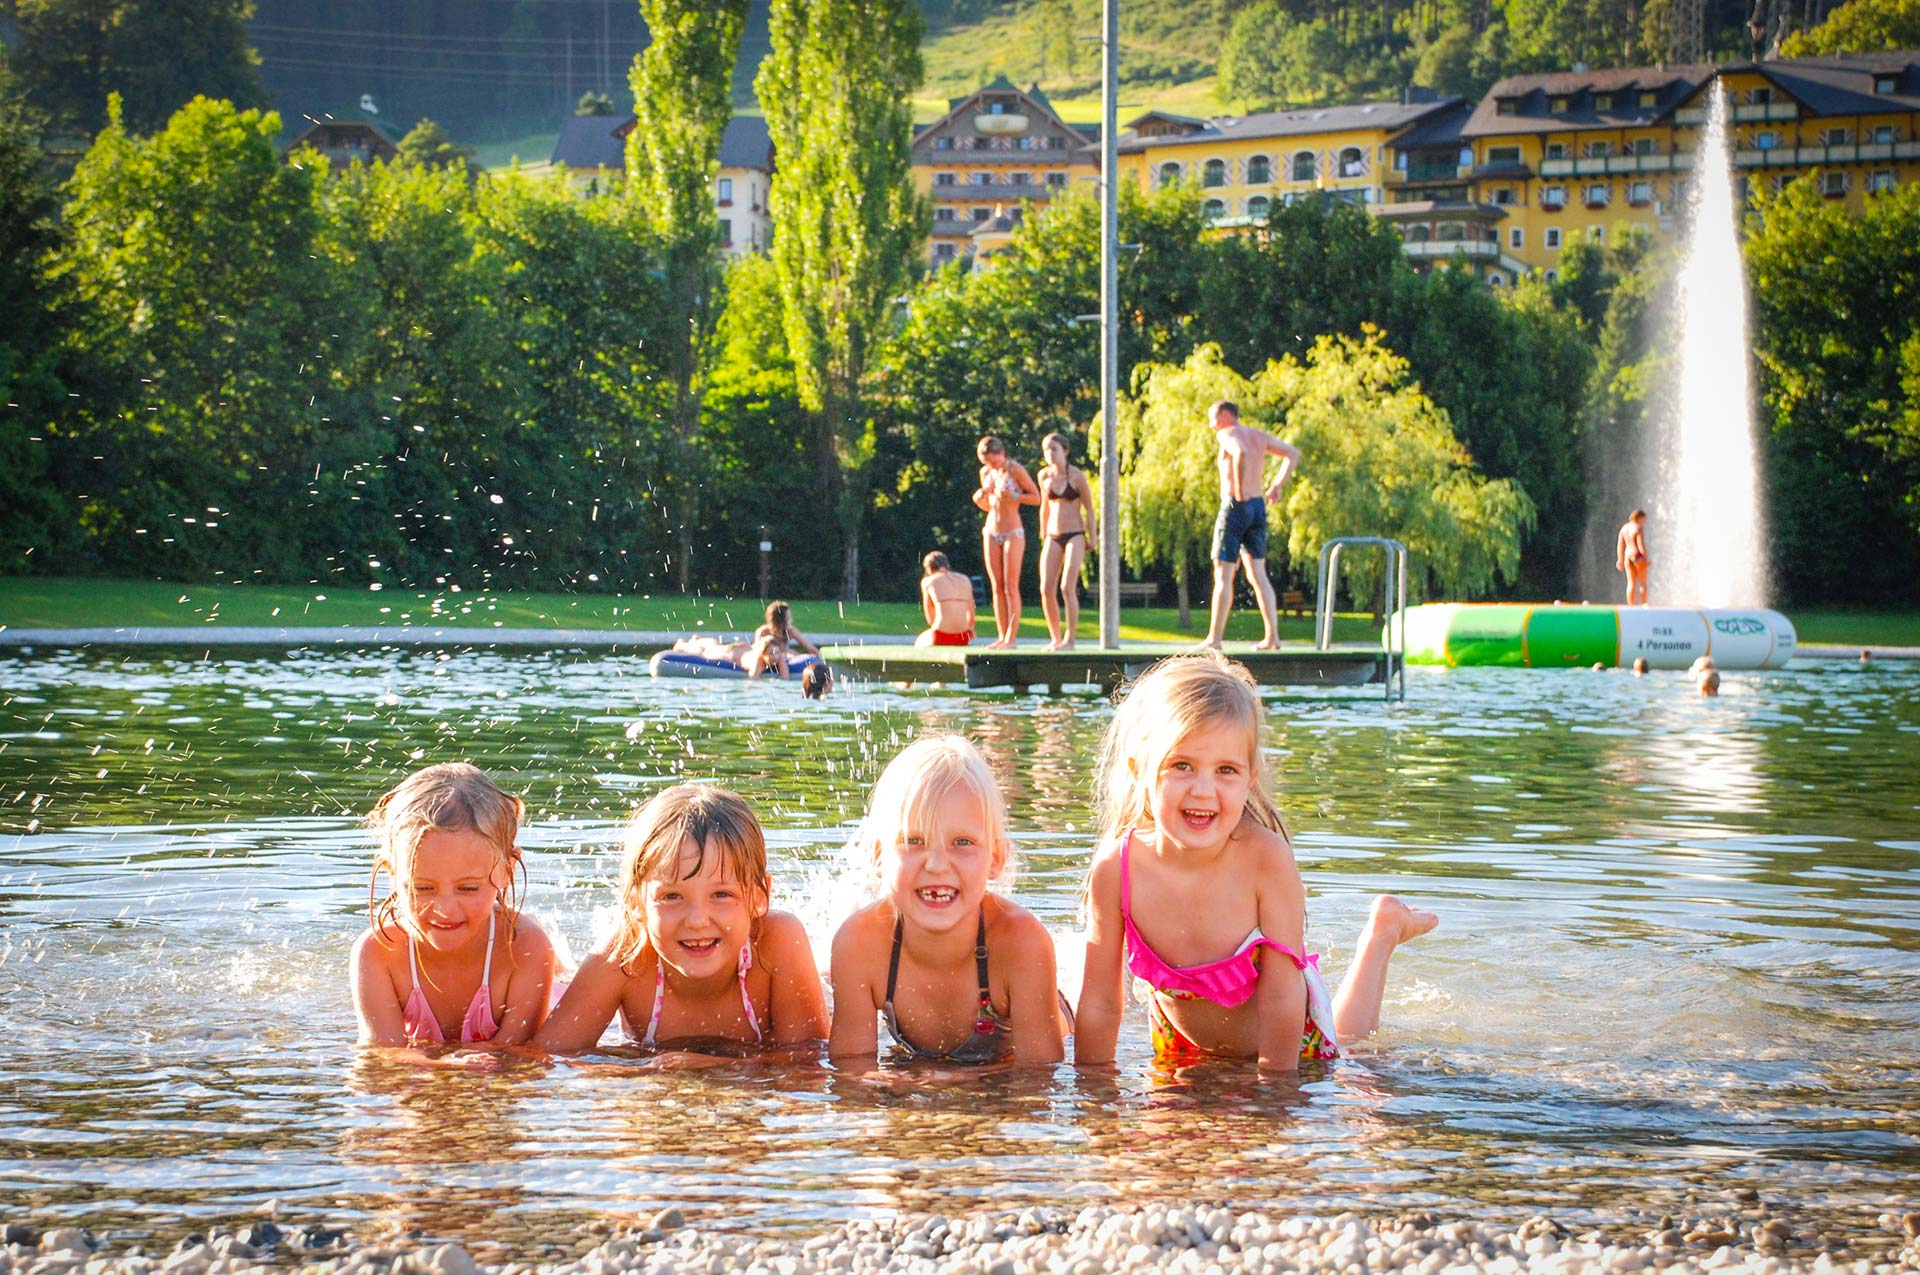 Bathing fun for the whole family on the surrounding lakes